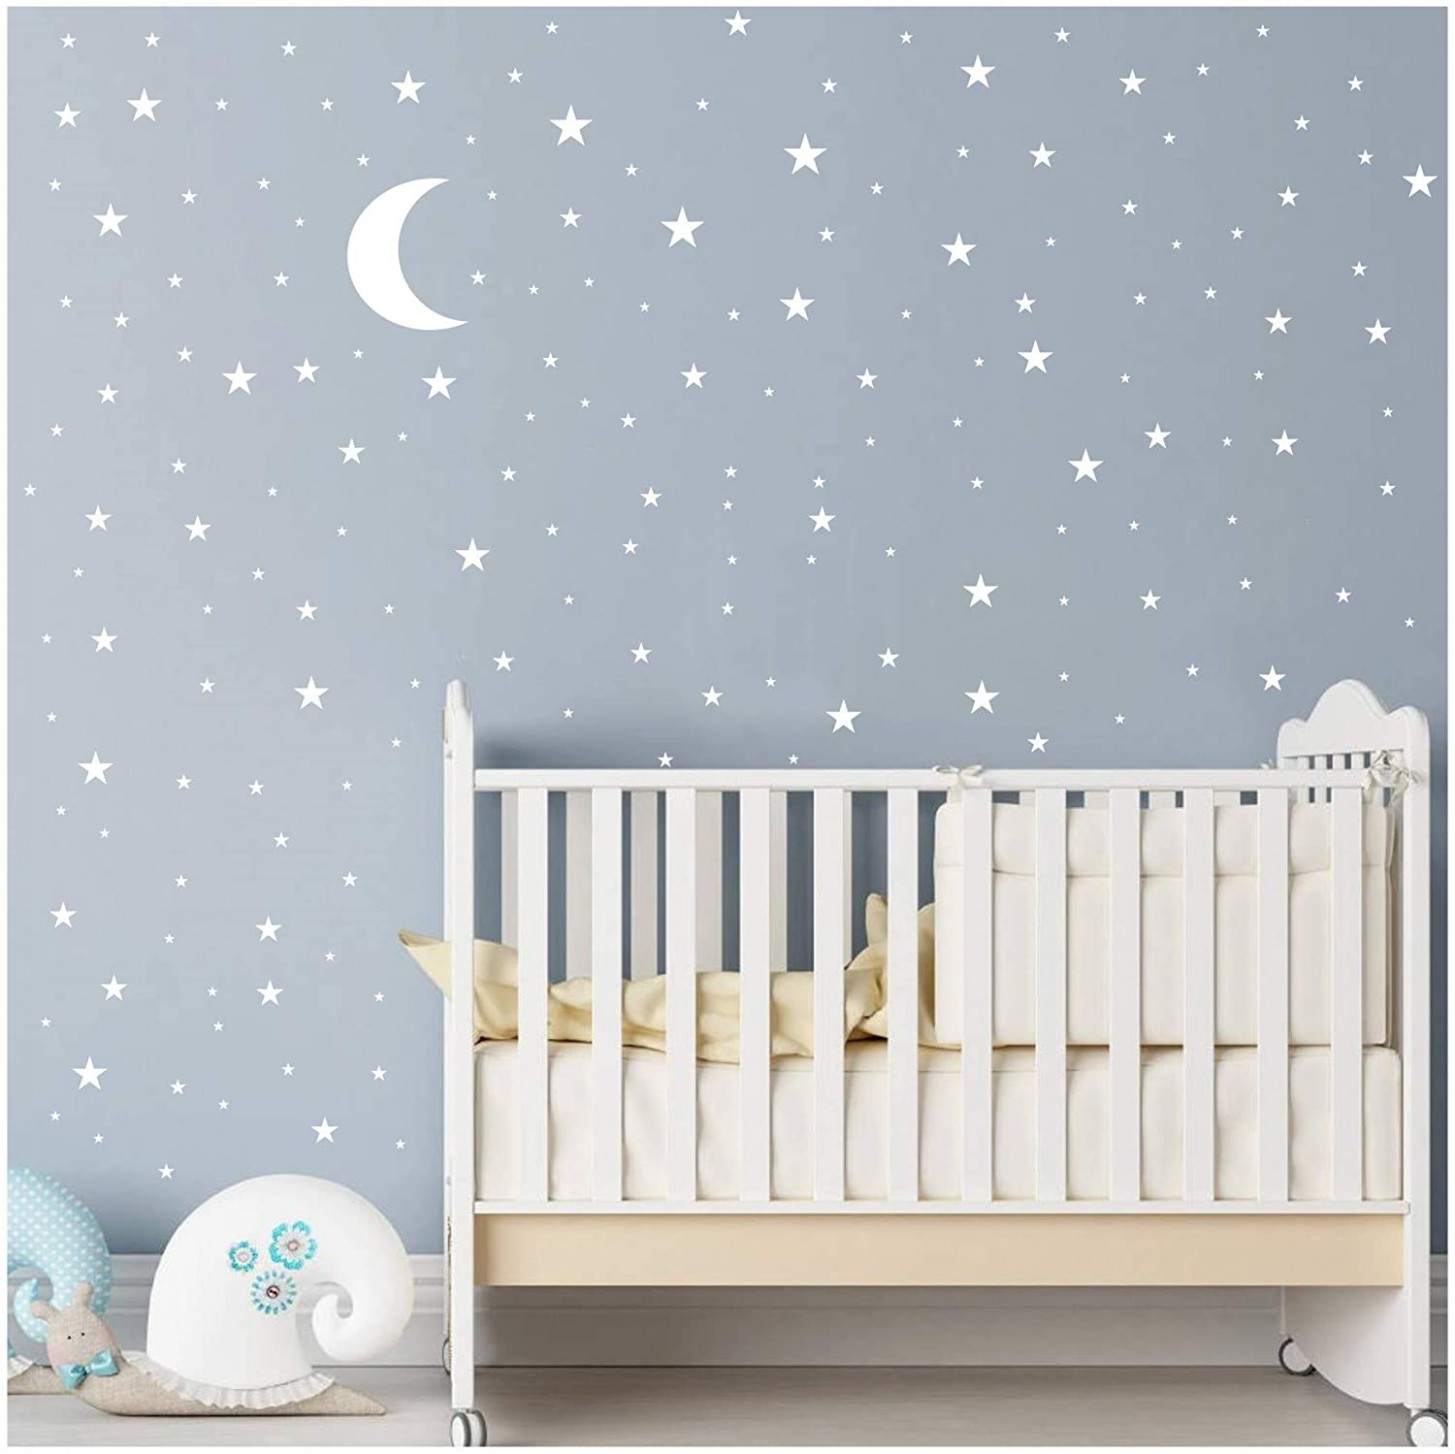 Moon and Stars Wall Decal Vinyl Sticker for Kids Boy Girls Baby Room  Decoration Good Night Nursery Wall Decor Home House Bedroom Design YMX9  (White) - Baby Room Vinyl Wall Art